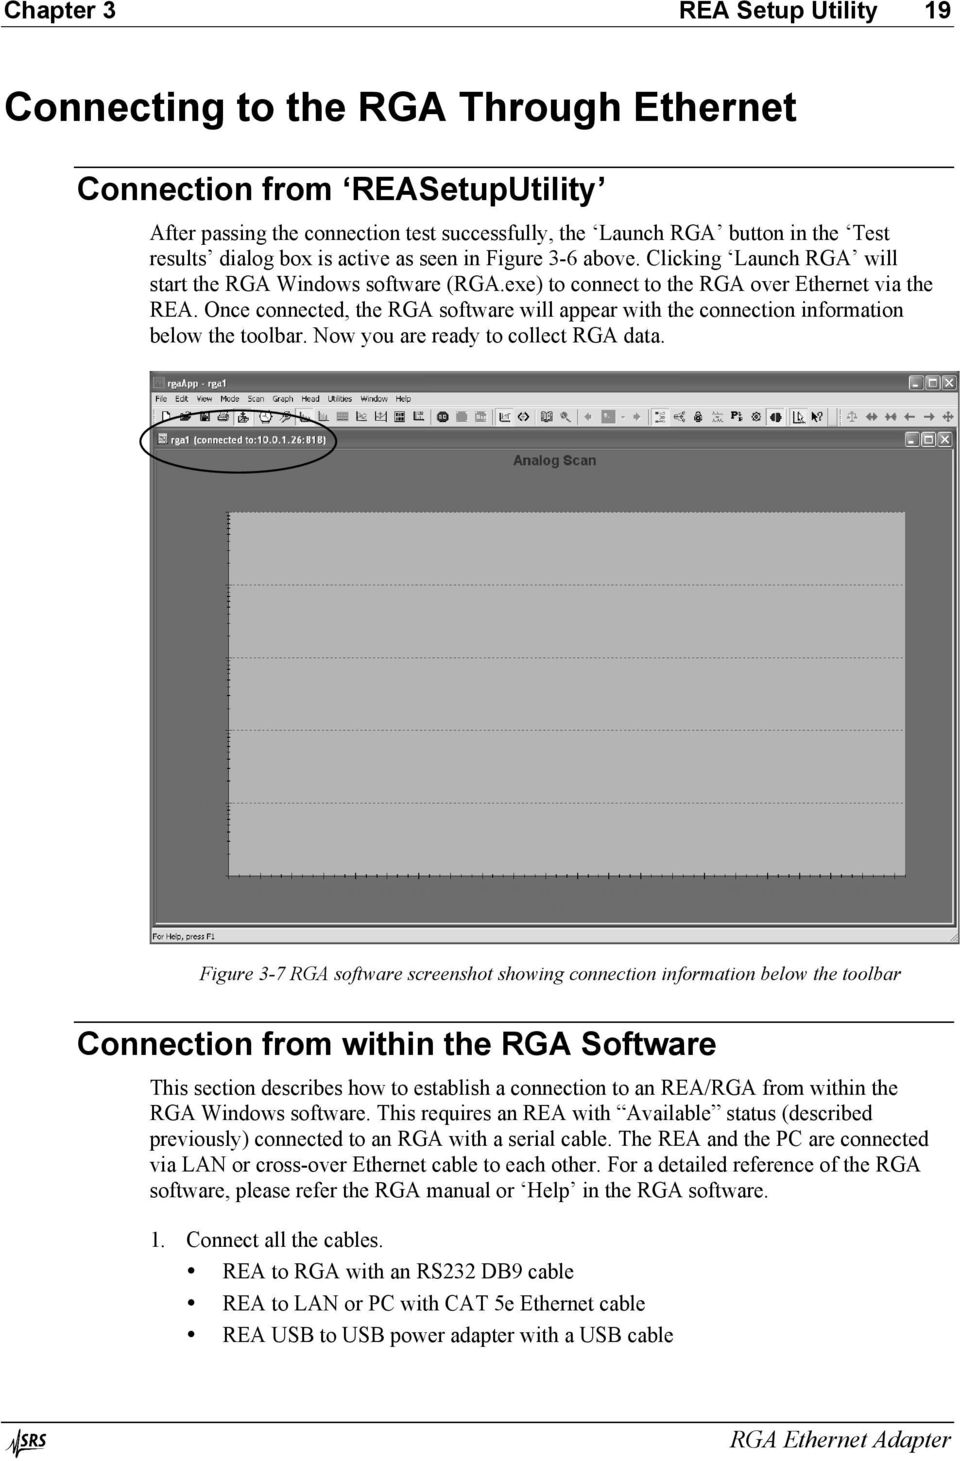 Once connected, the RGA software will appear with the connection information below the toolbar. Now you are ready to collect RGA data.